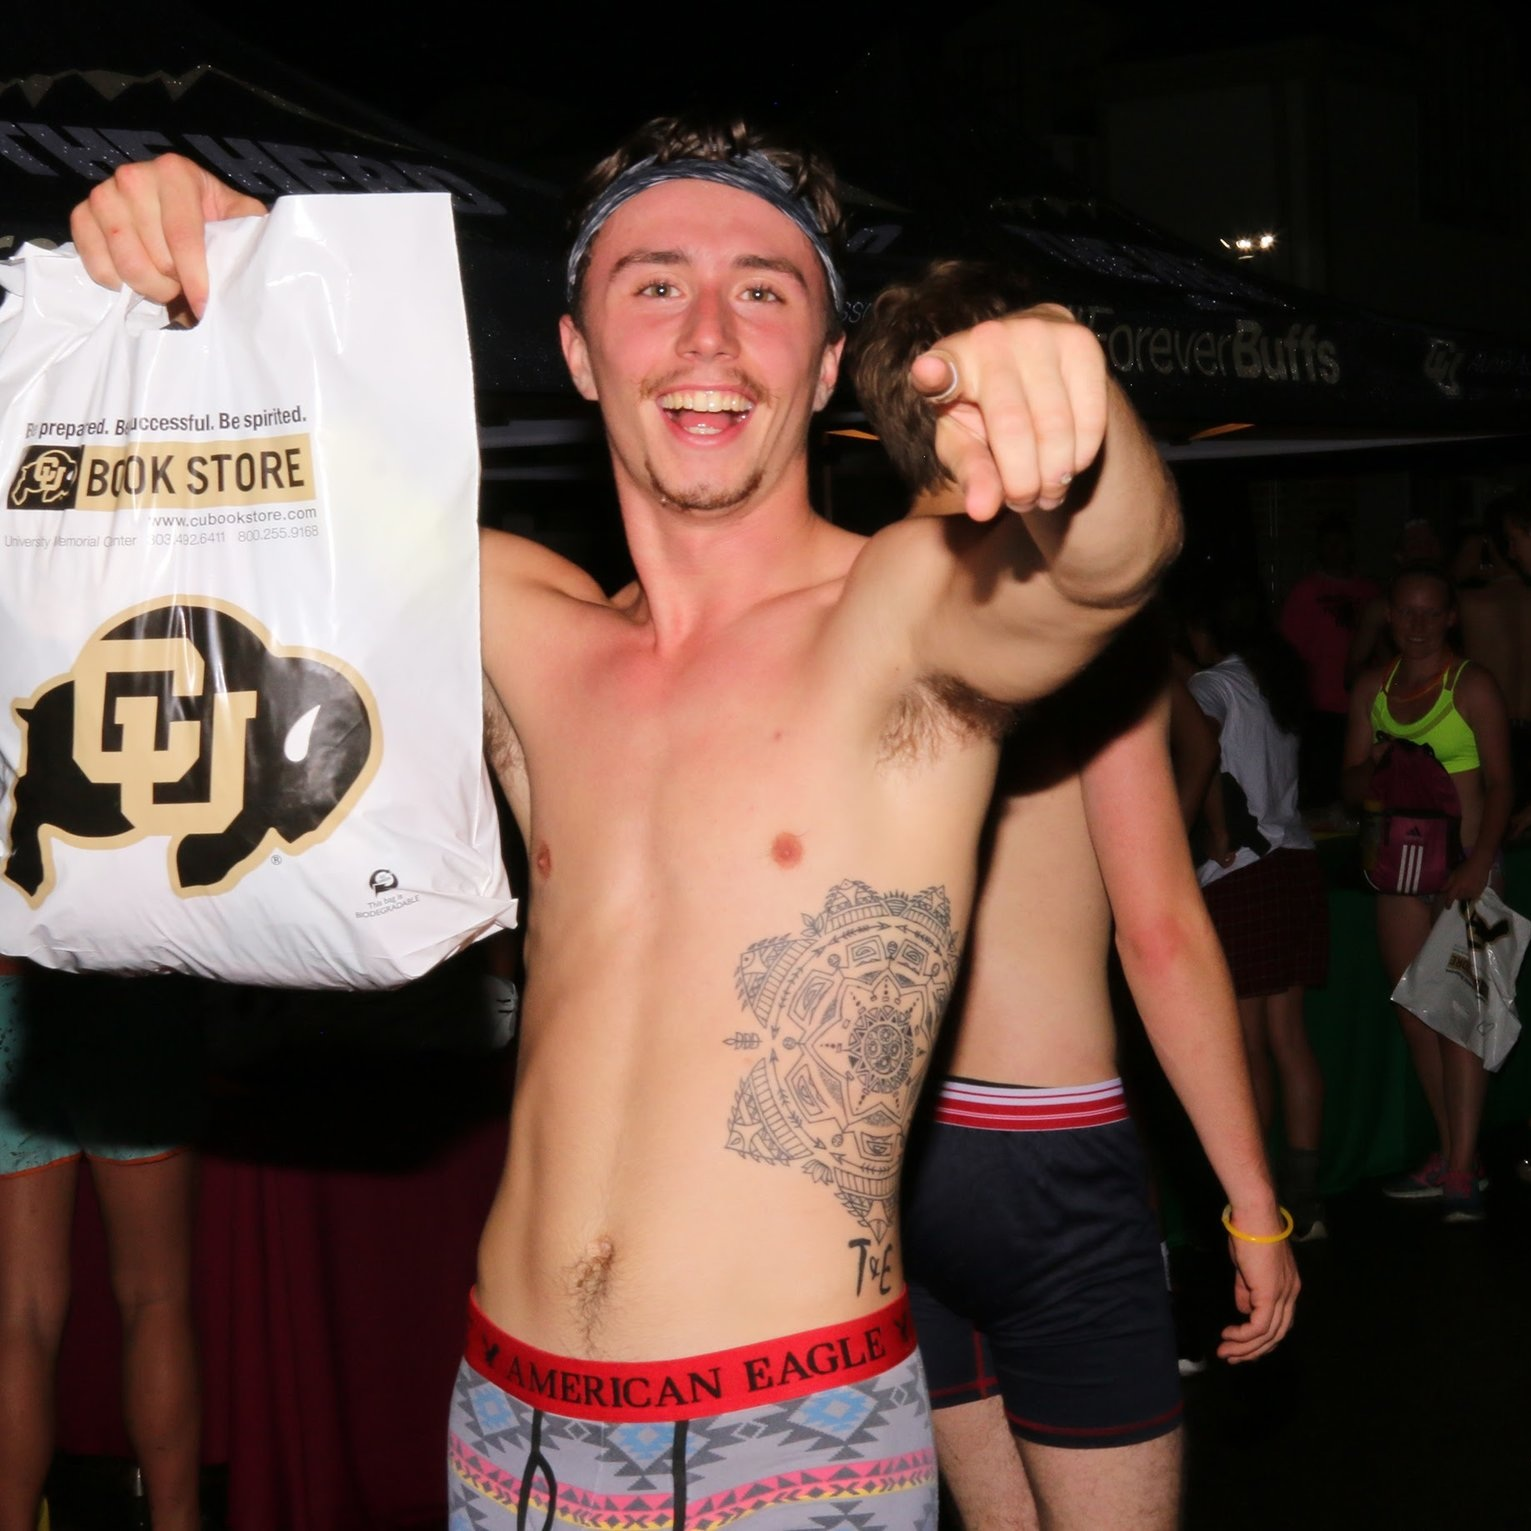 """CU gets """"nearly naked"""" for charity drive - CU students ran """"nearly naked"""" for charity at The Herd's thirteenth annual Nearly Naked Mile donation drive Friday night."""